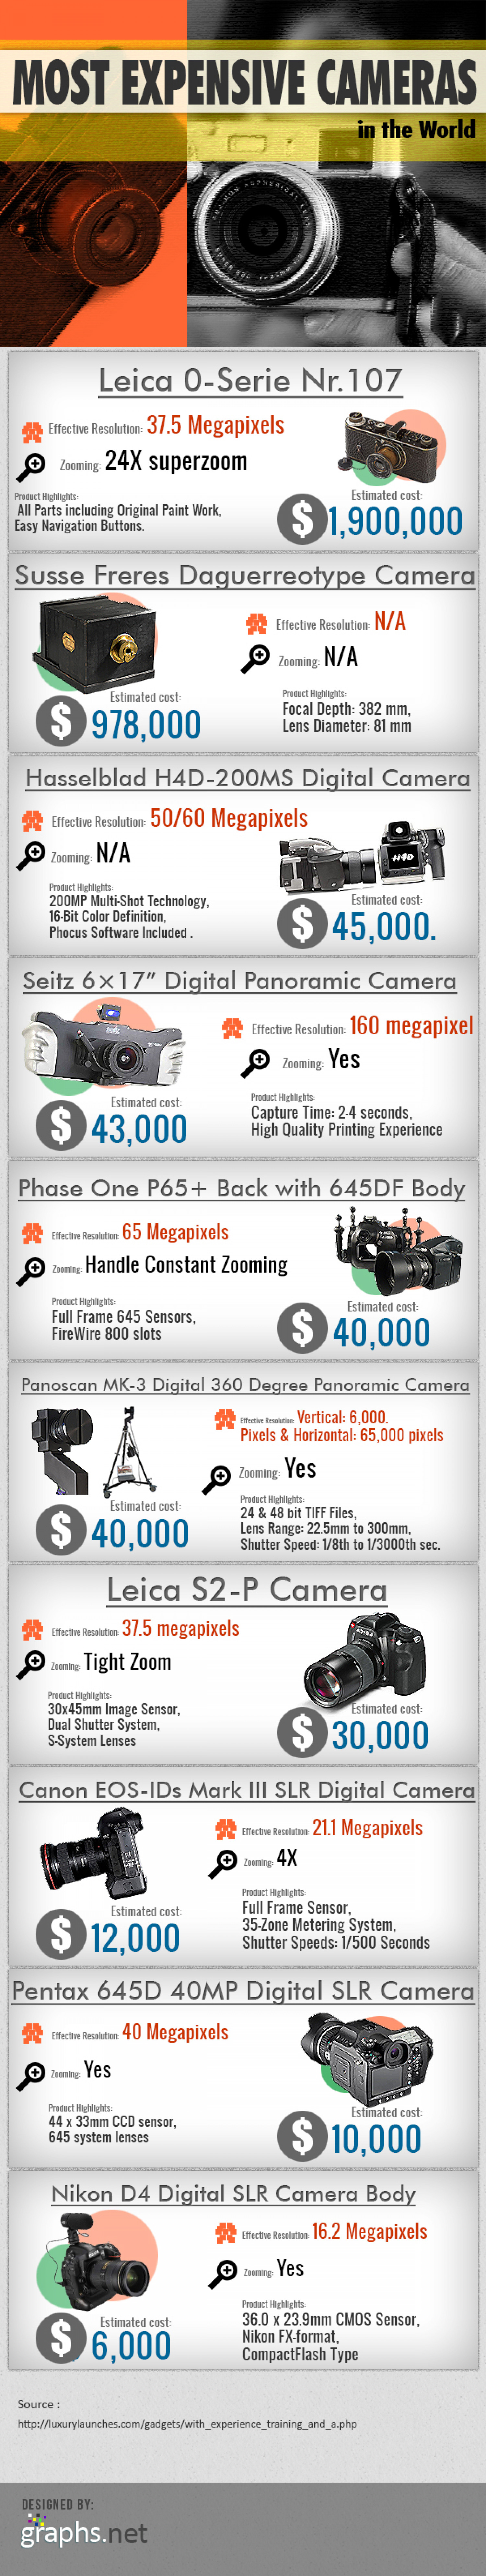 World's costliest cameras Infographic